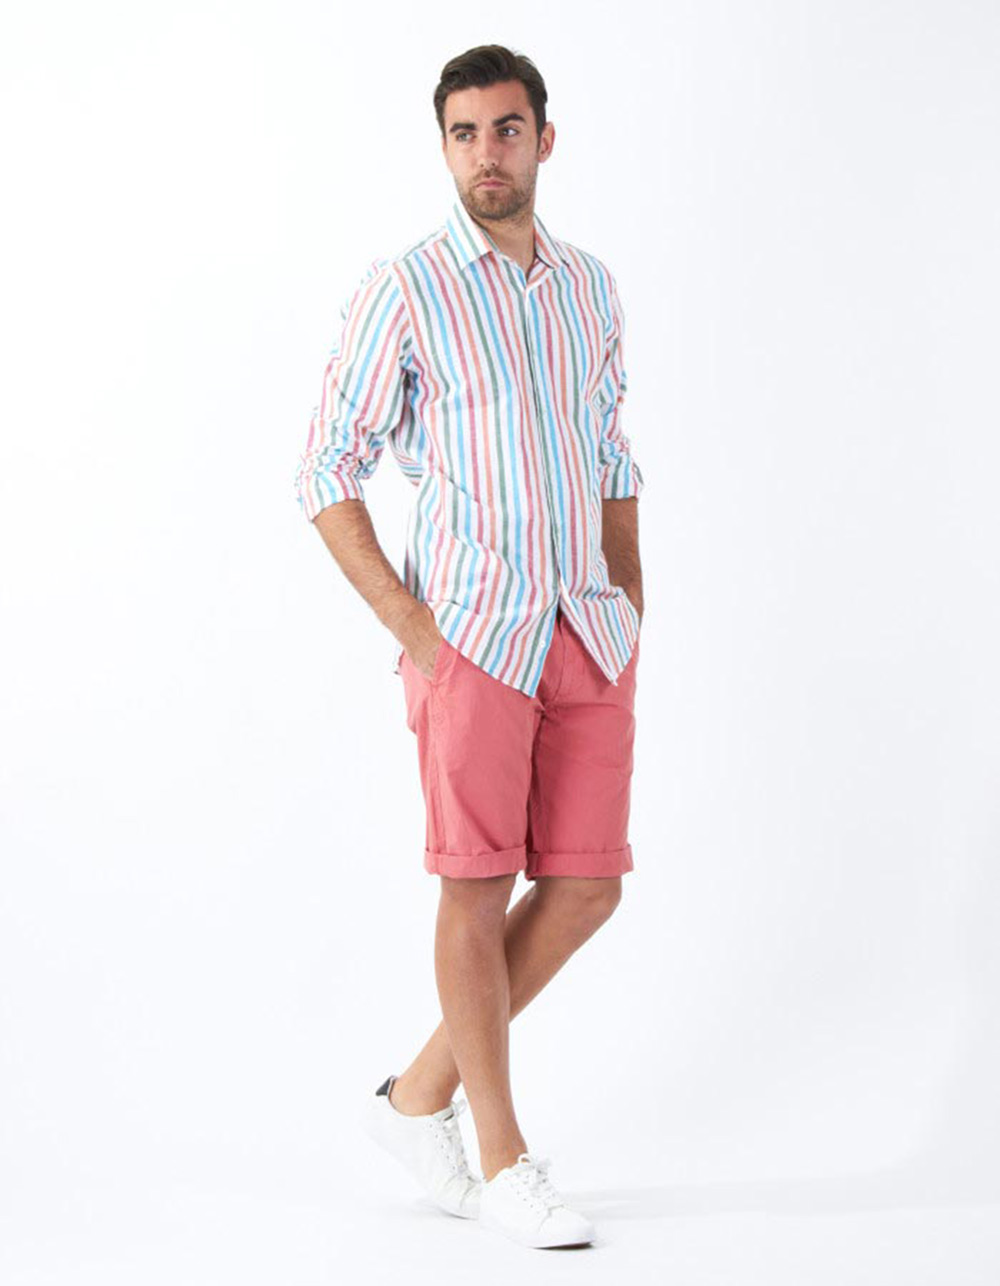 Multicolour striped shirt